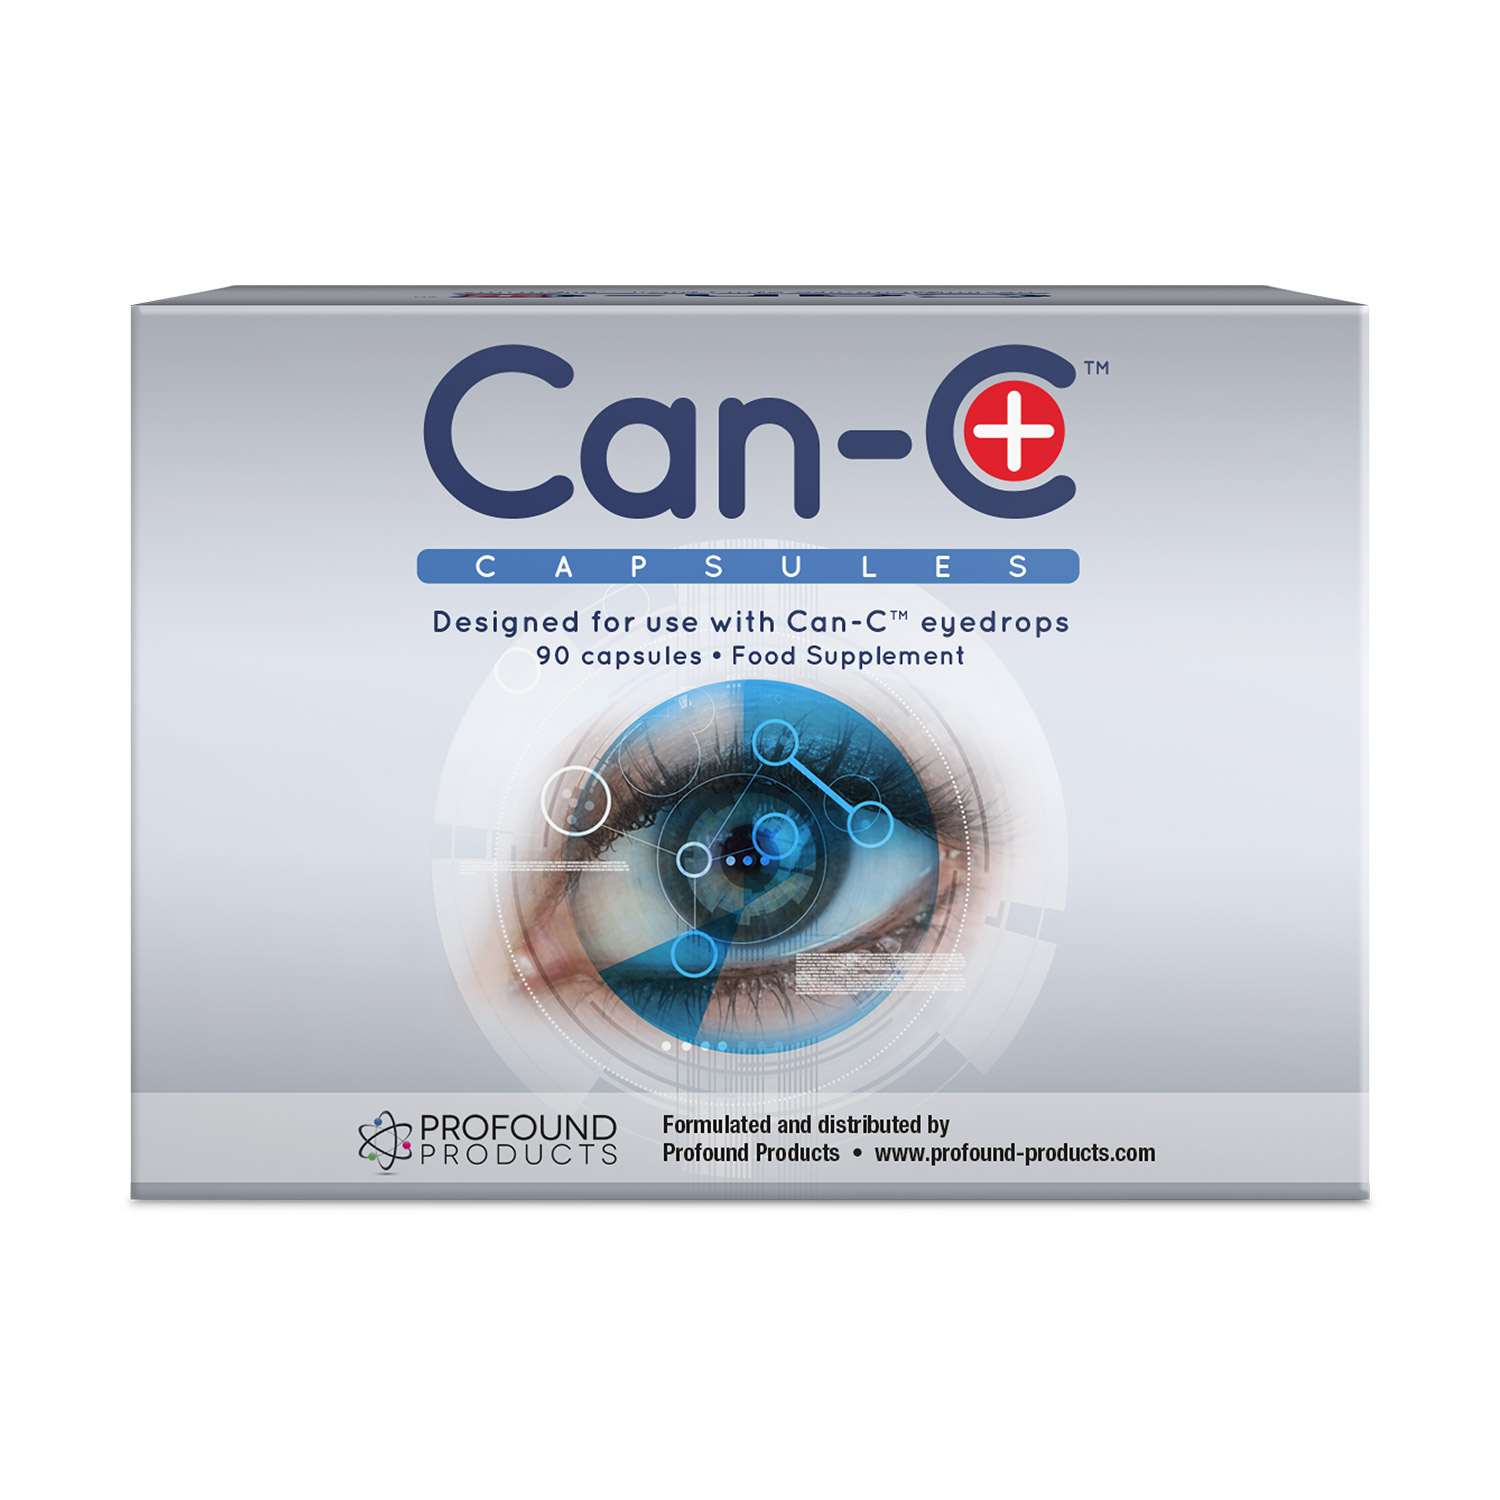 Can-C Plus ProFound Products